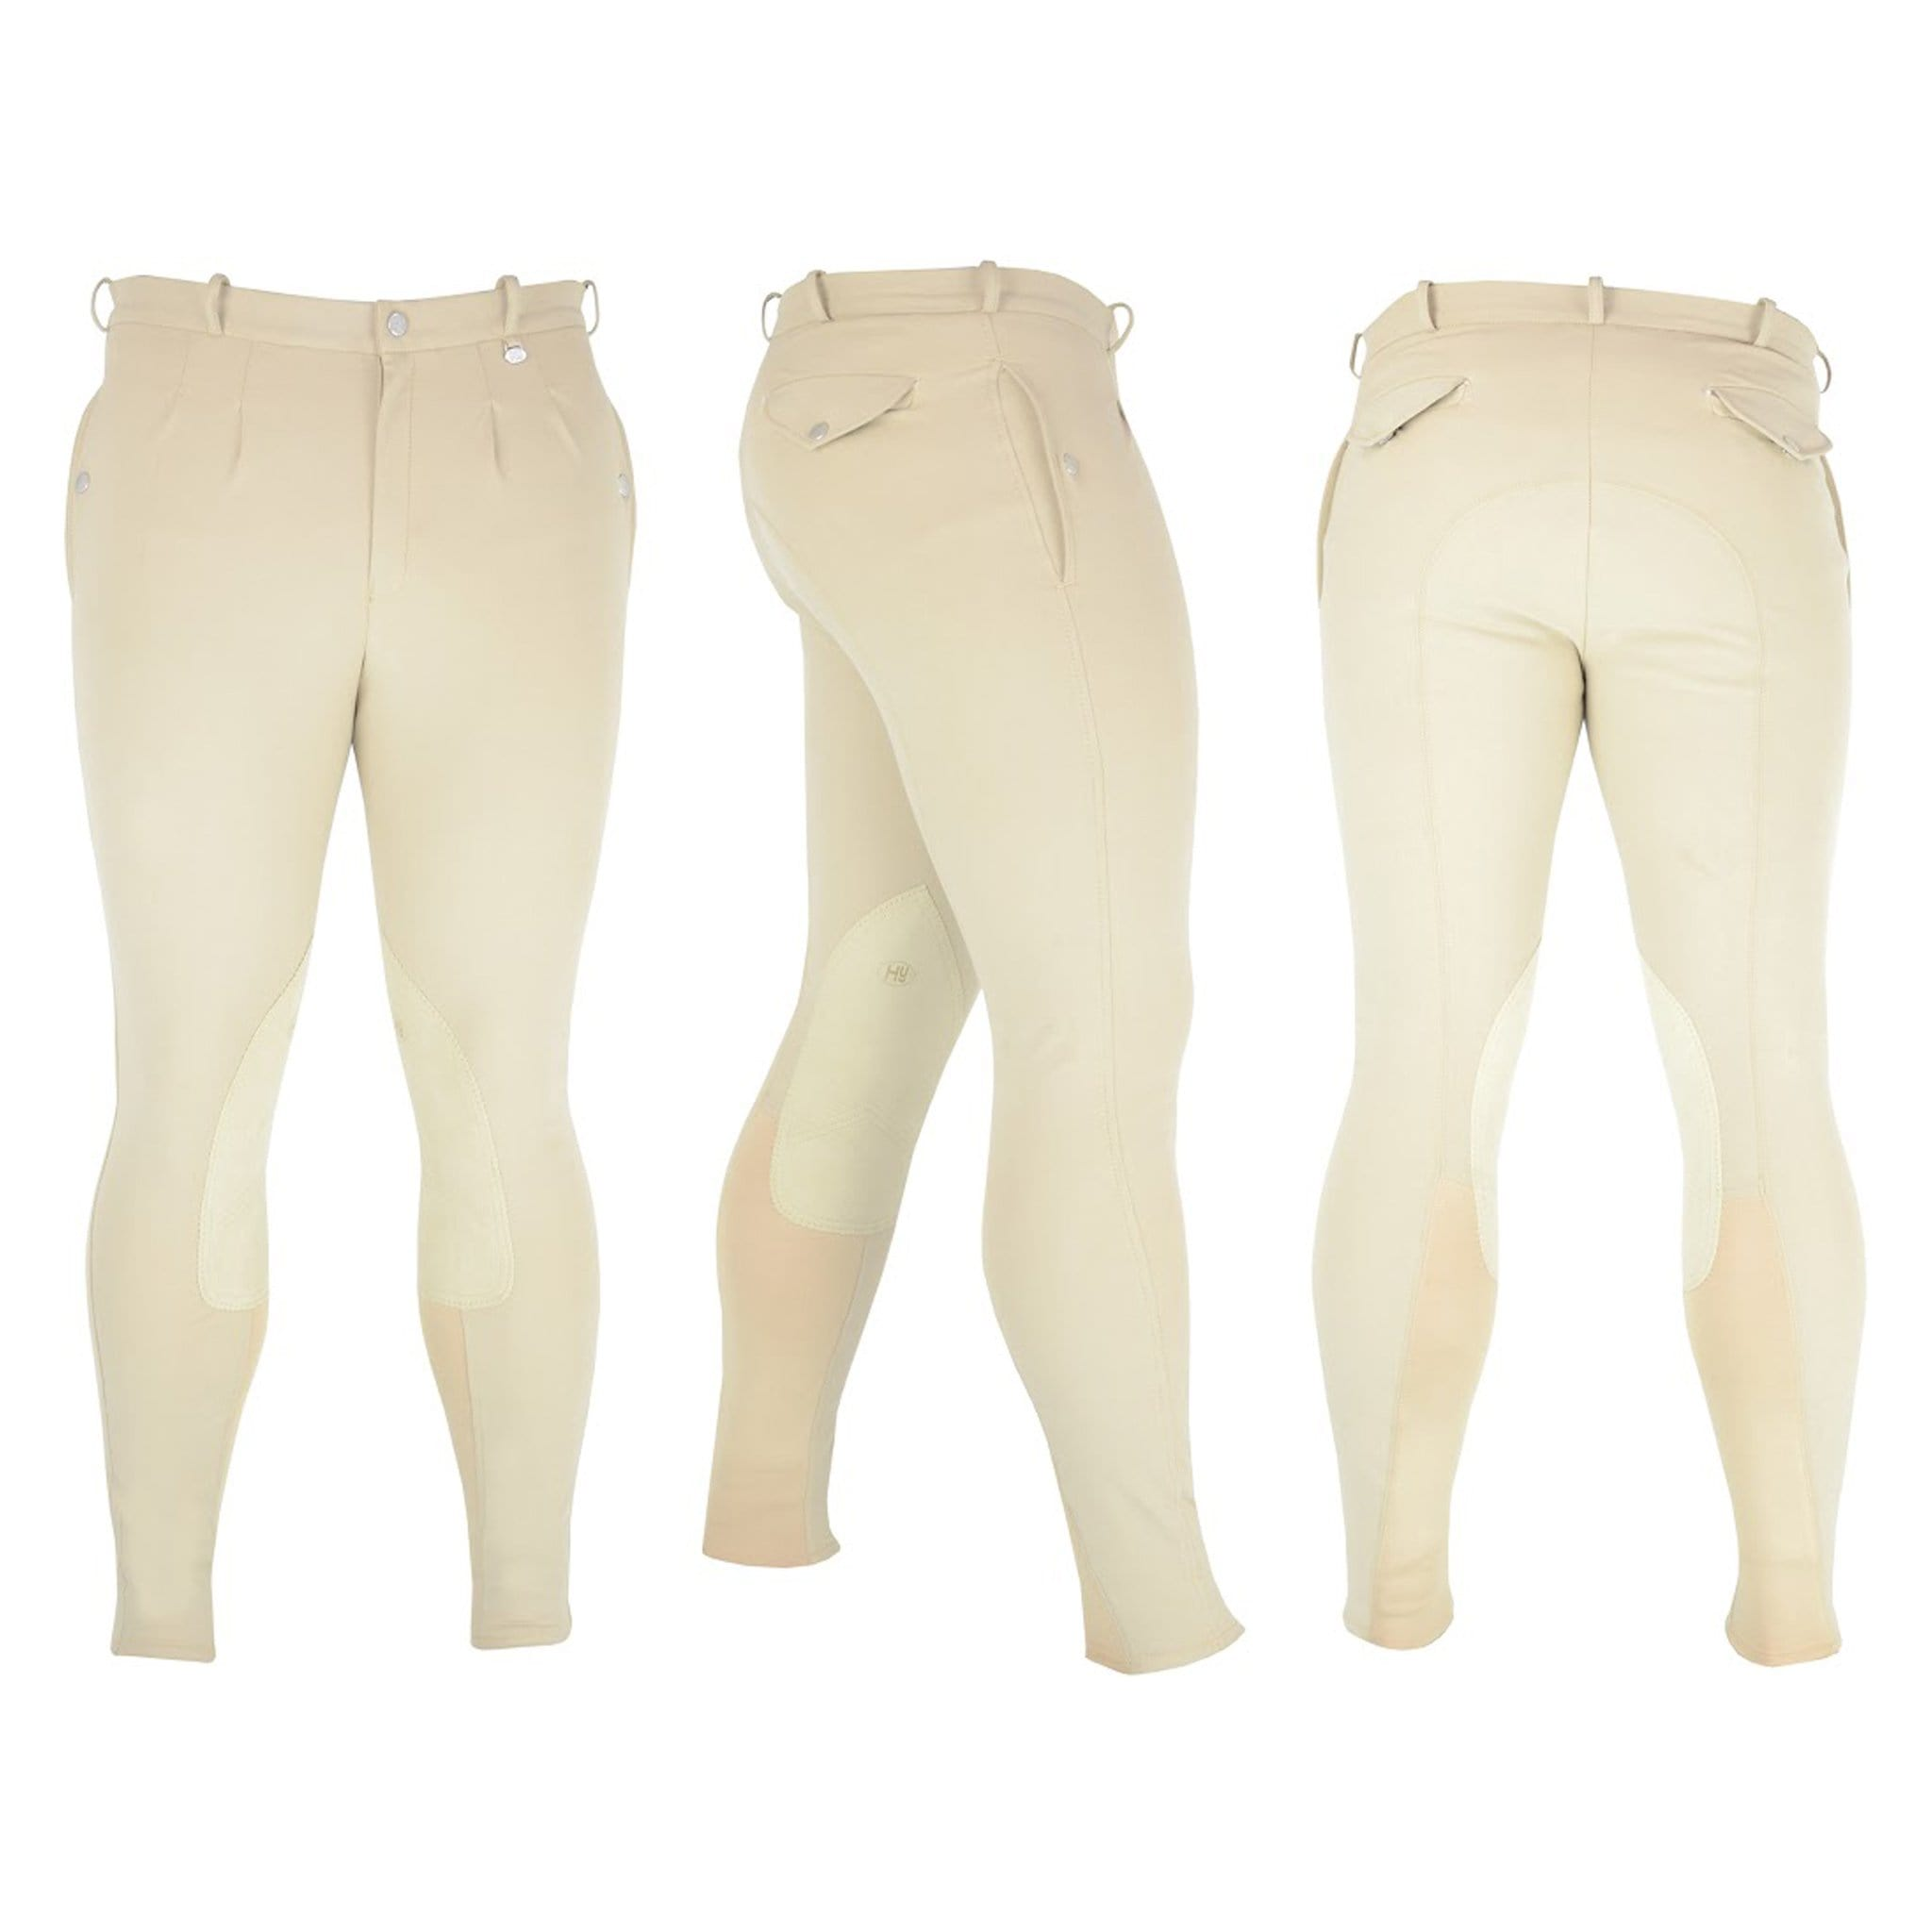 HyPerformance Men's Softshell Winter Alos Knee Patch Breeches.